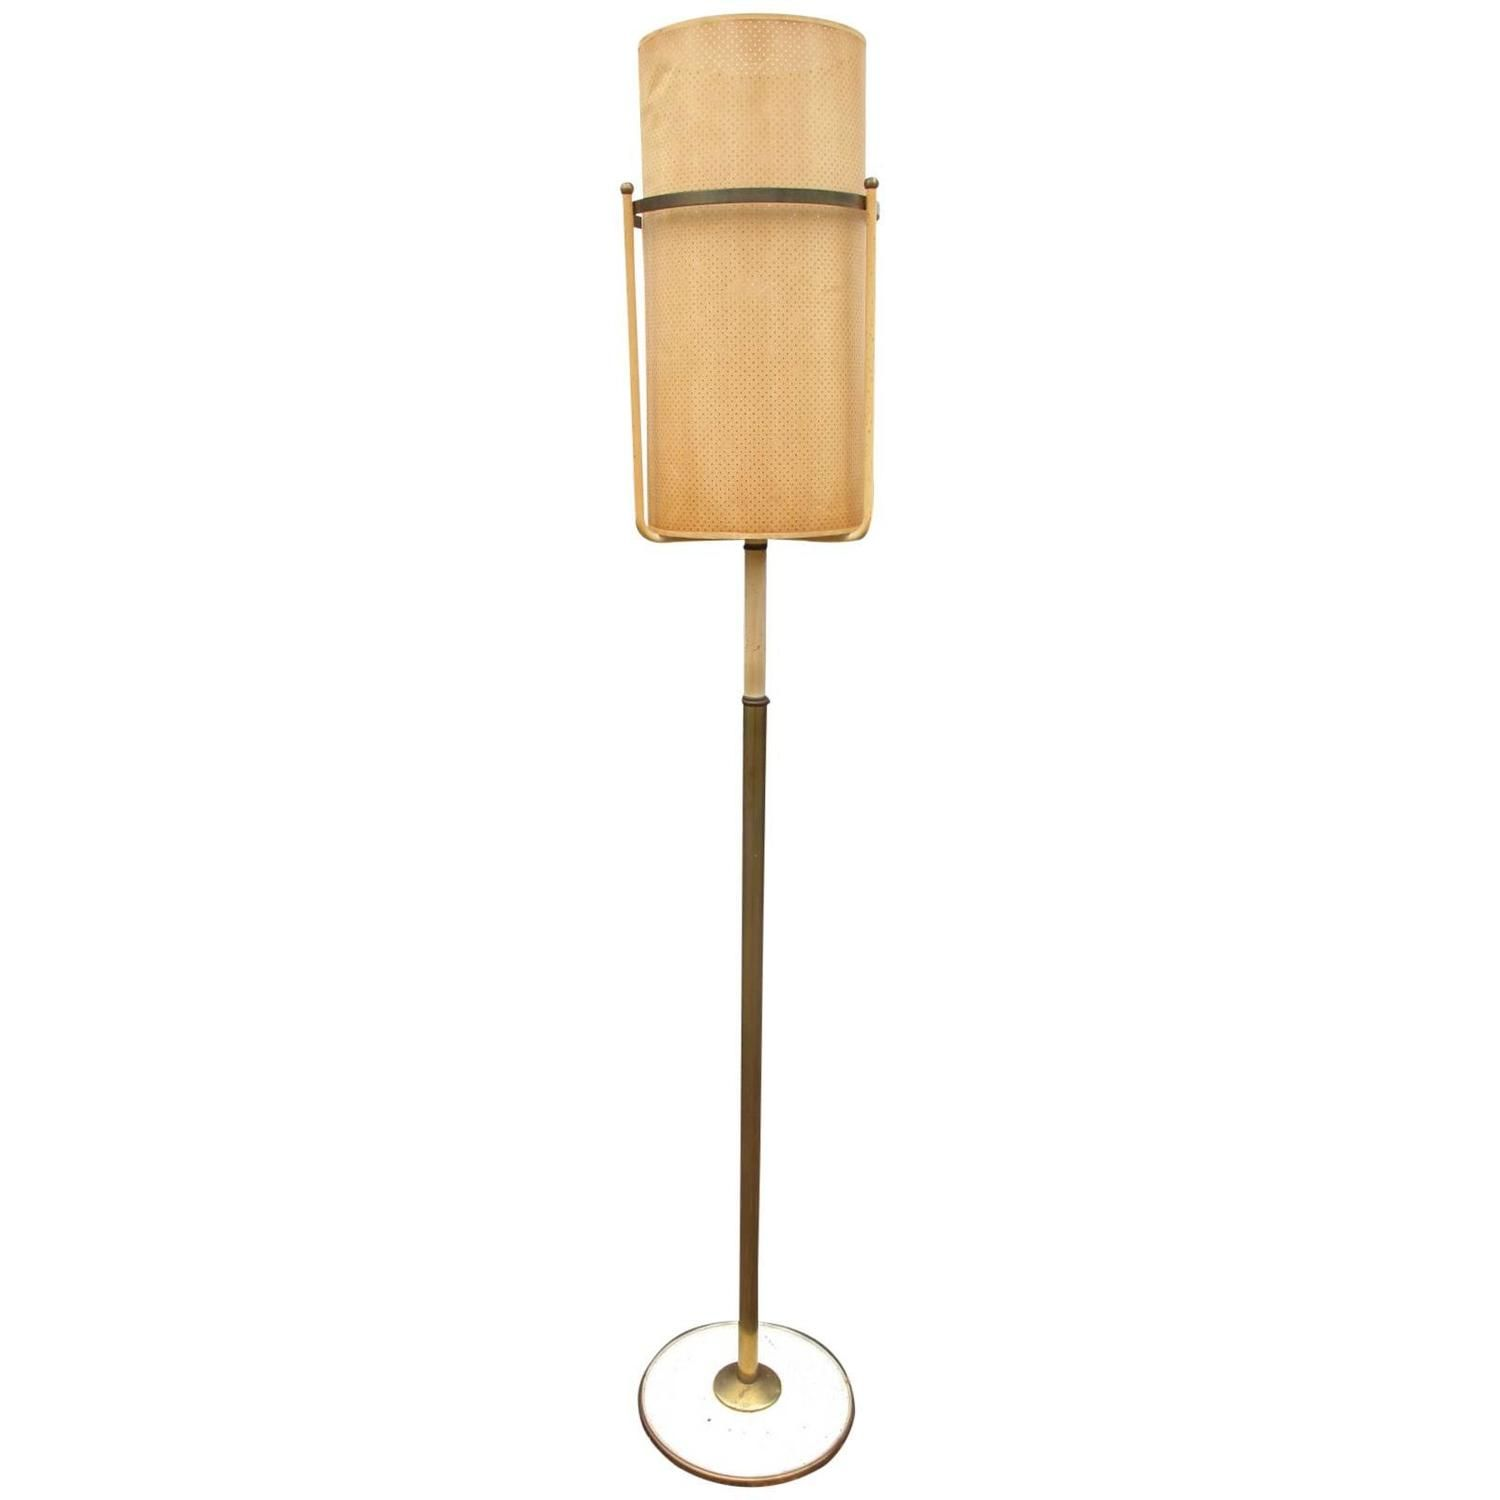 Paper Shade Floor Lamp Classy 20Th Century Floor Lamp With Perforated Paper Shade  Floor Lamp Review